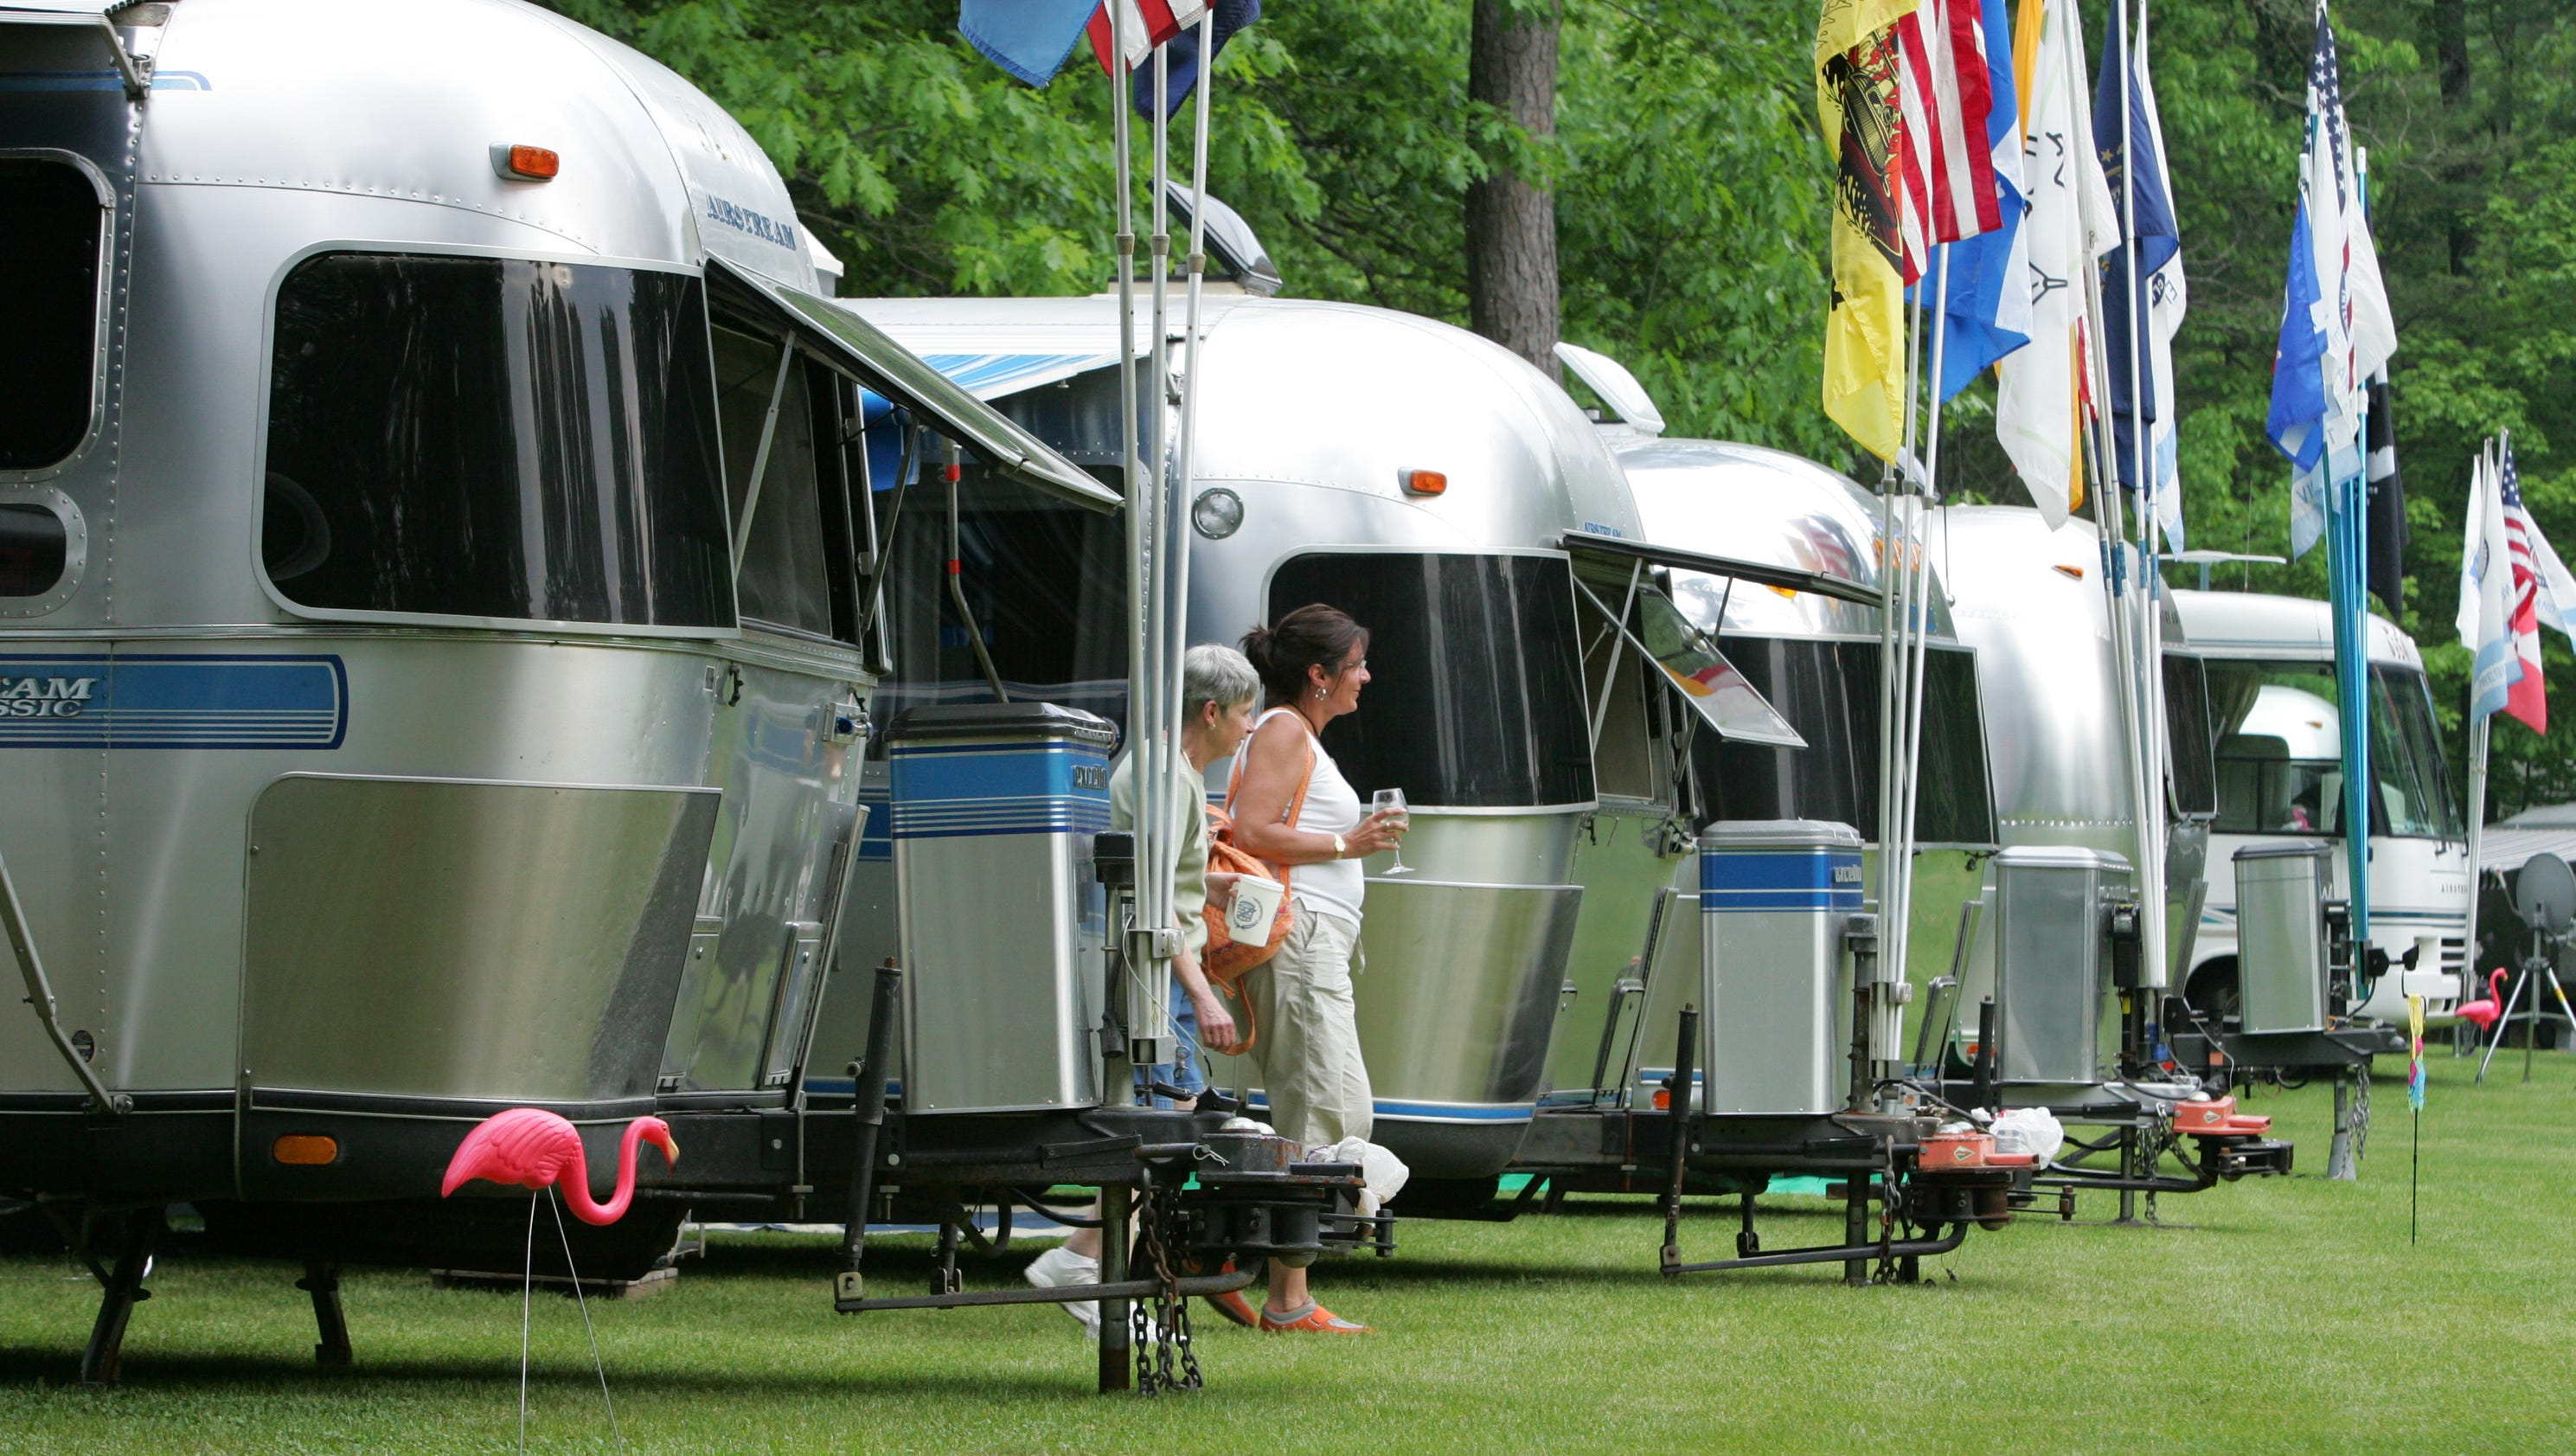 Millennials Are Fueling New Growth In Recreational Vehicle